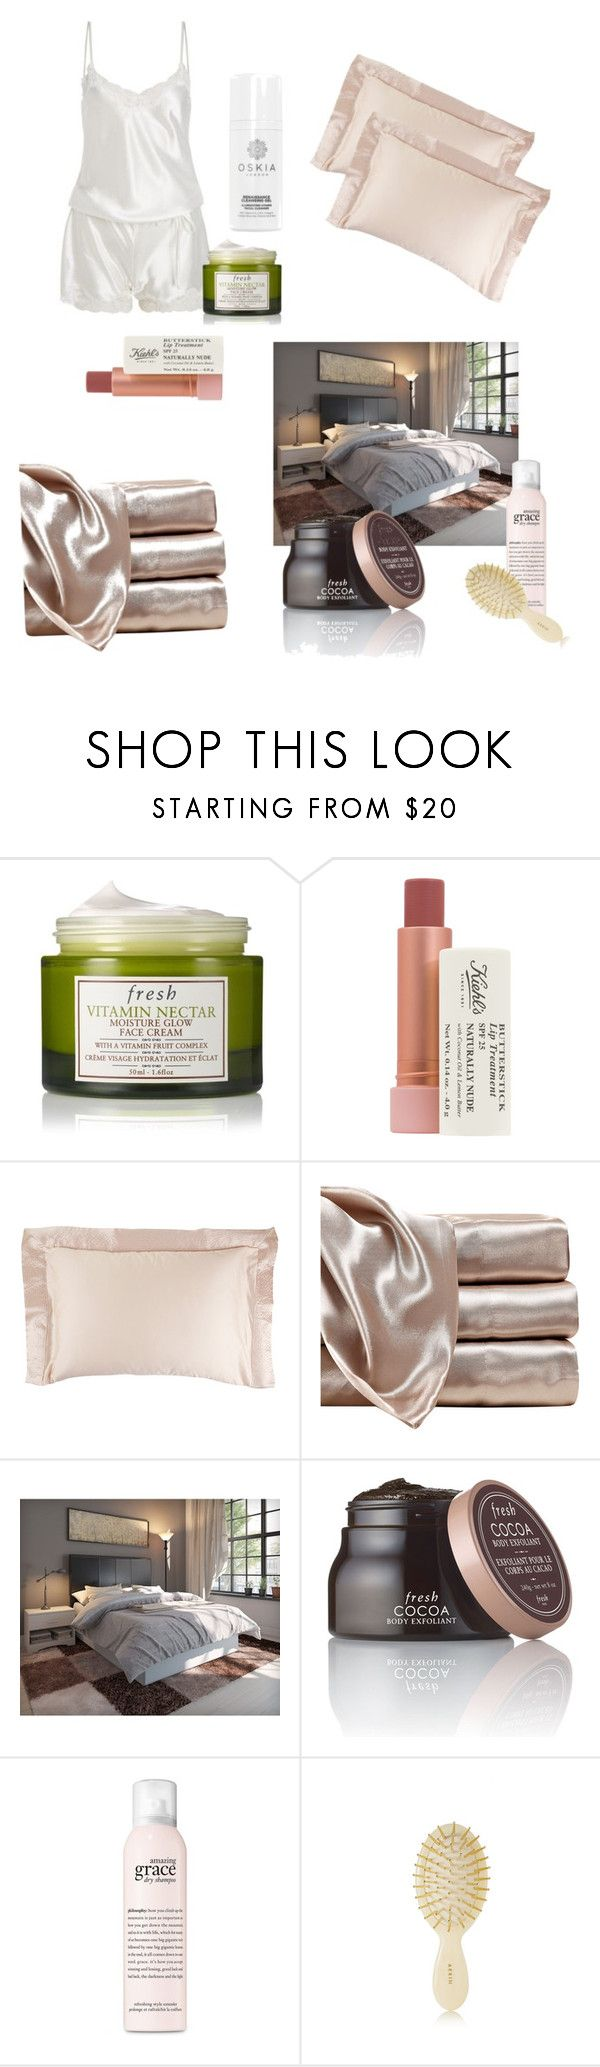 """""""(night routine pt.2)  🍋💧"""" by glowingsilk ❤ liked on Polyvore featuring beauty, LingaDore, Fresh, Kiehl's, La Perla, Furniture of America, philosophy and AERIN"""